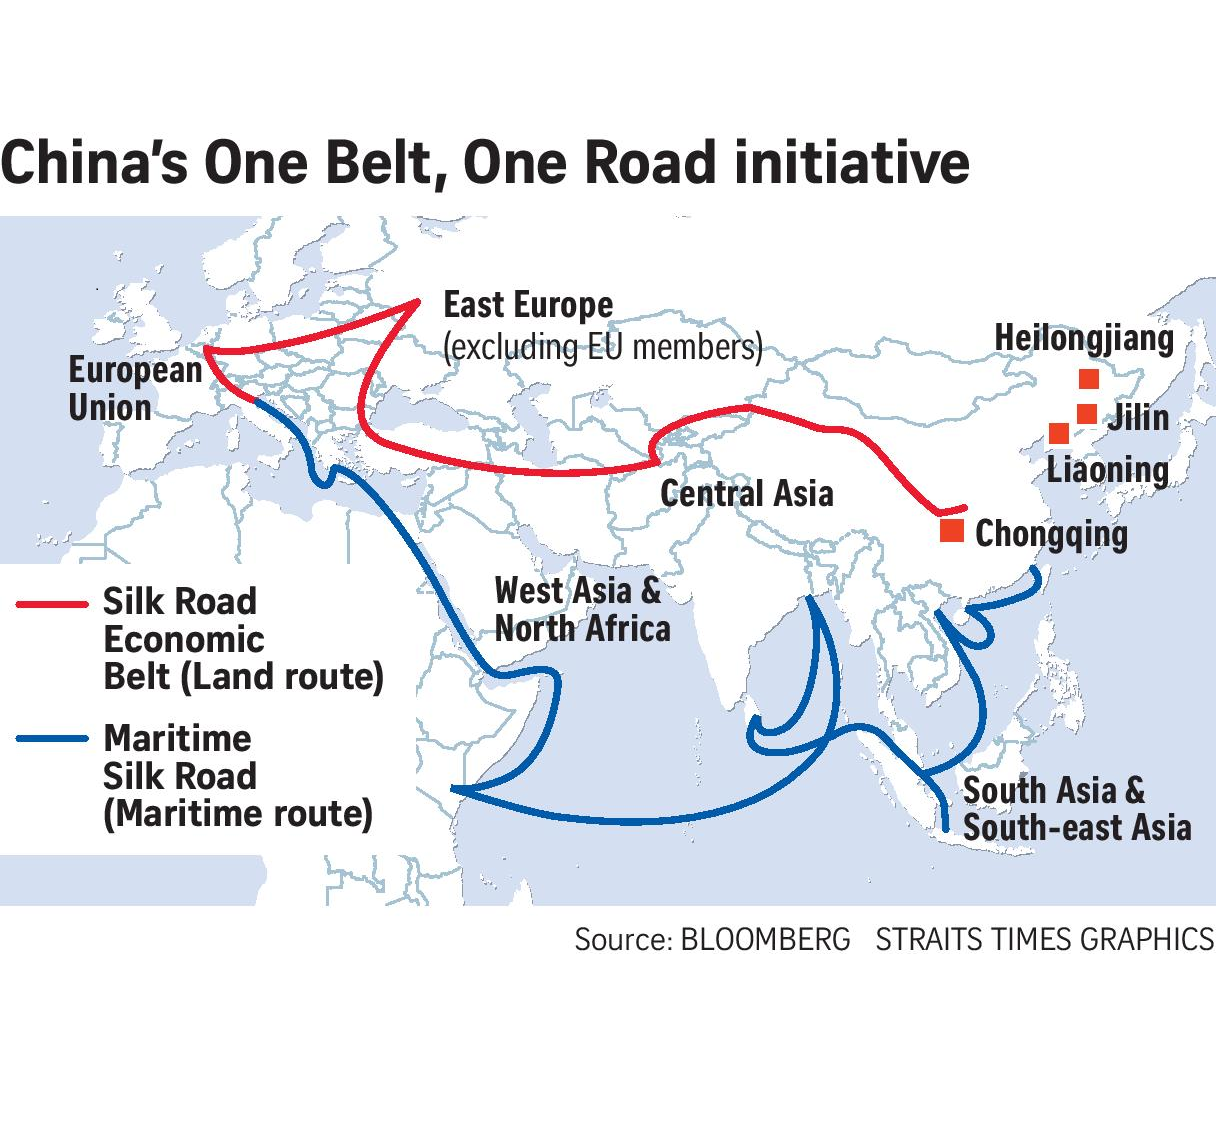 Whose $1 Trillion is China Spending on OBOR? - photo#41